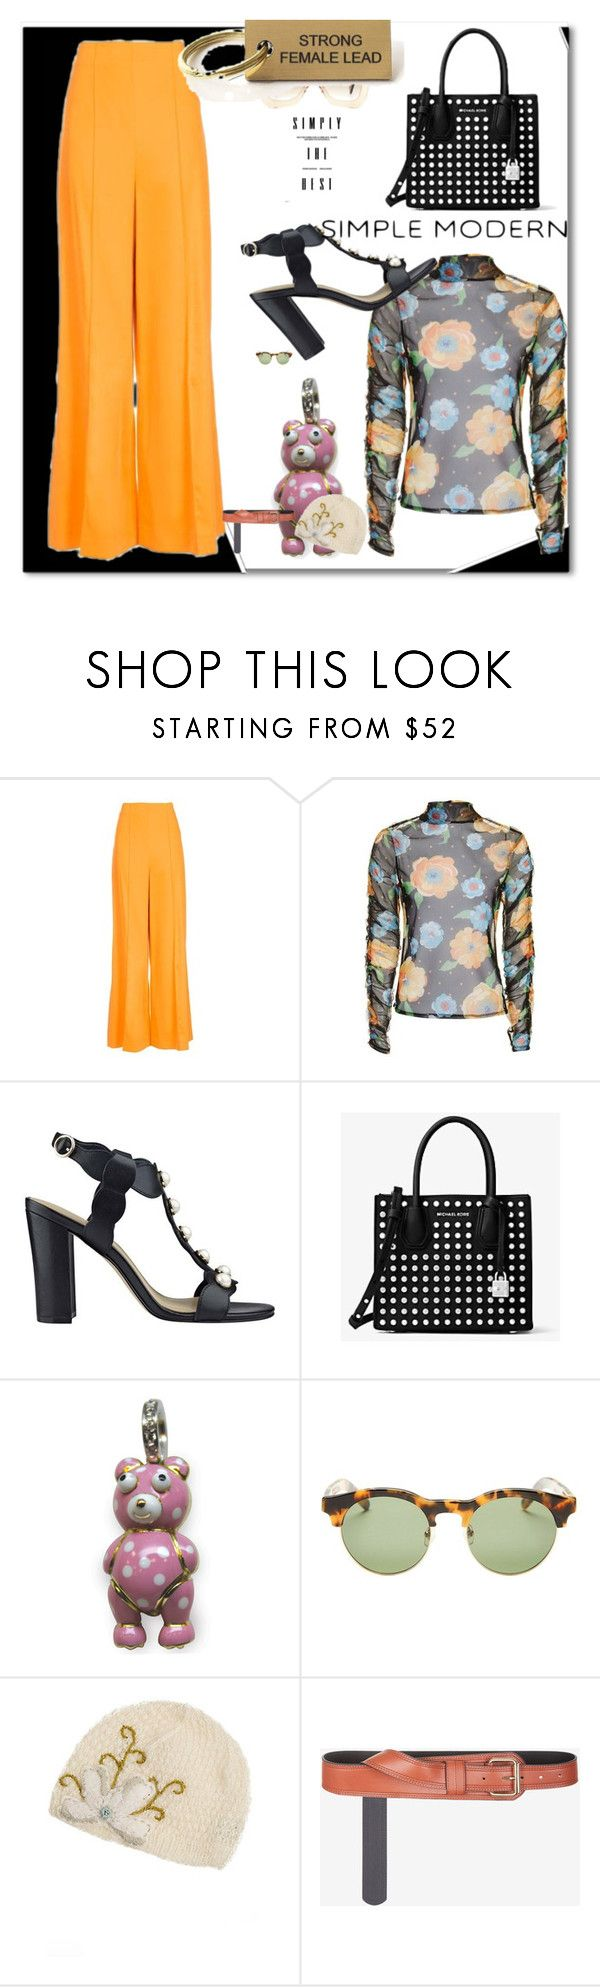 """Casual elegance"" by peeweevaaz ❤ liked on Polyvore featuring Topshop, Marc Fisher, Aaron Basha, Han Kjøbenhavn, Supra, Overland Sheepskin Co., BCBGMAXAZRIA, outfit, polyvoreeditorial and officeparty"